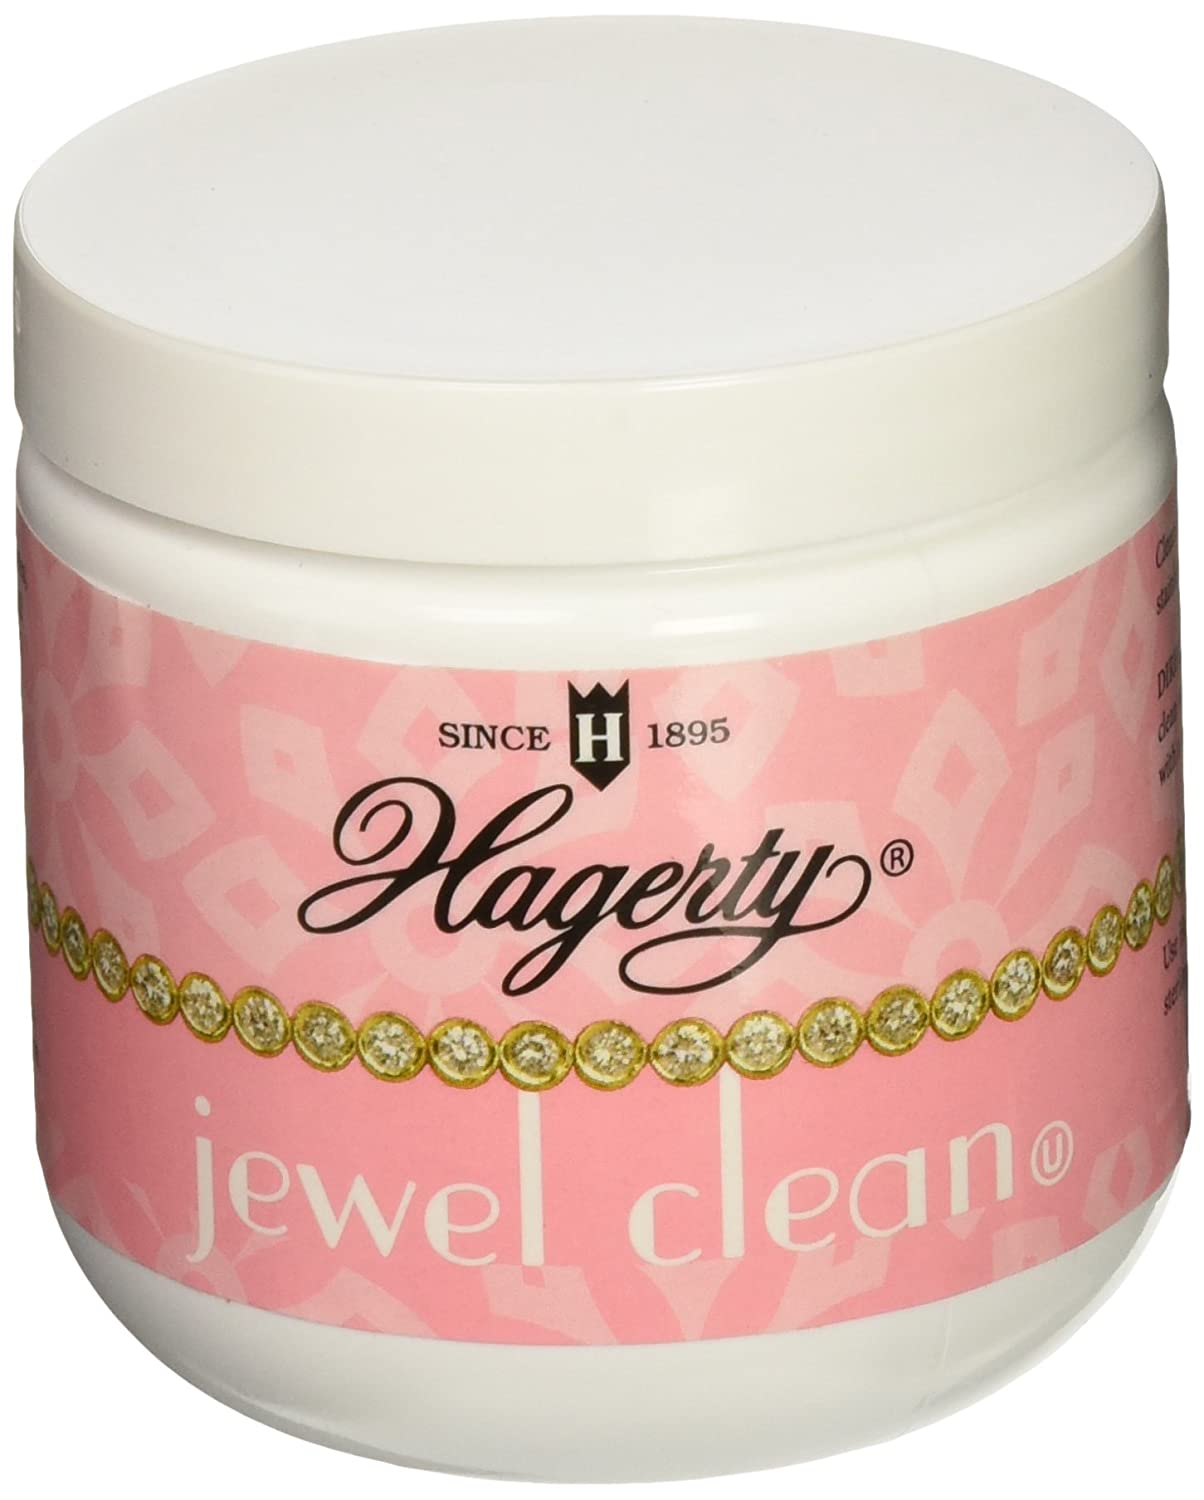 Hagerty 7 oz Jewelry Cleaner, White W. J. Hagerty 16007